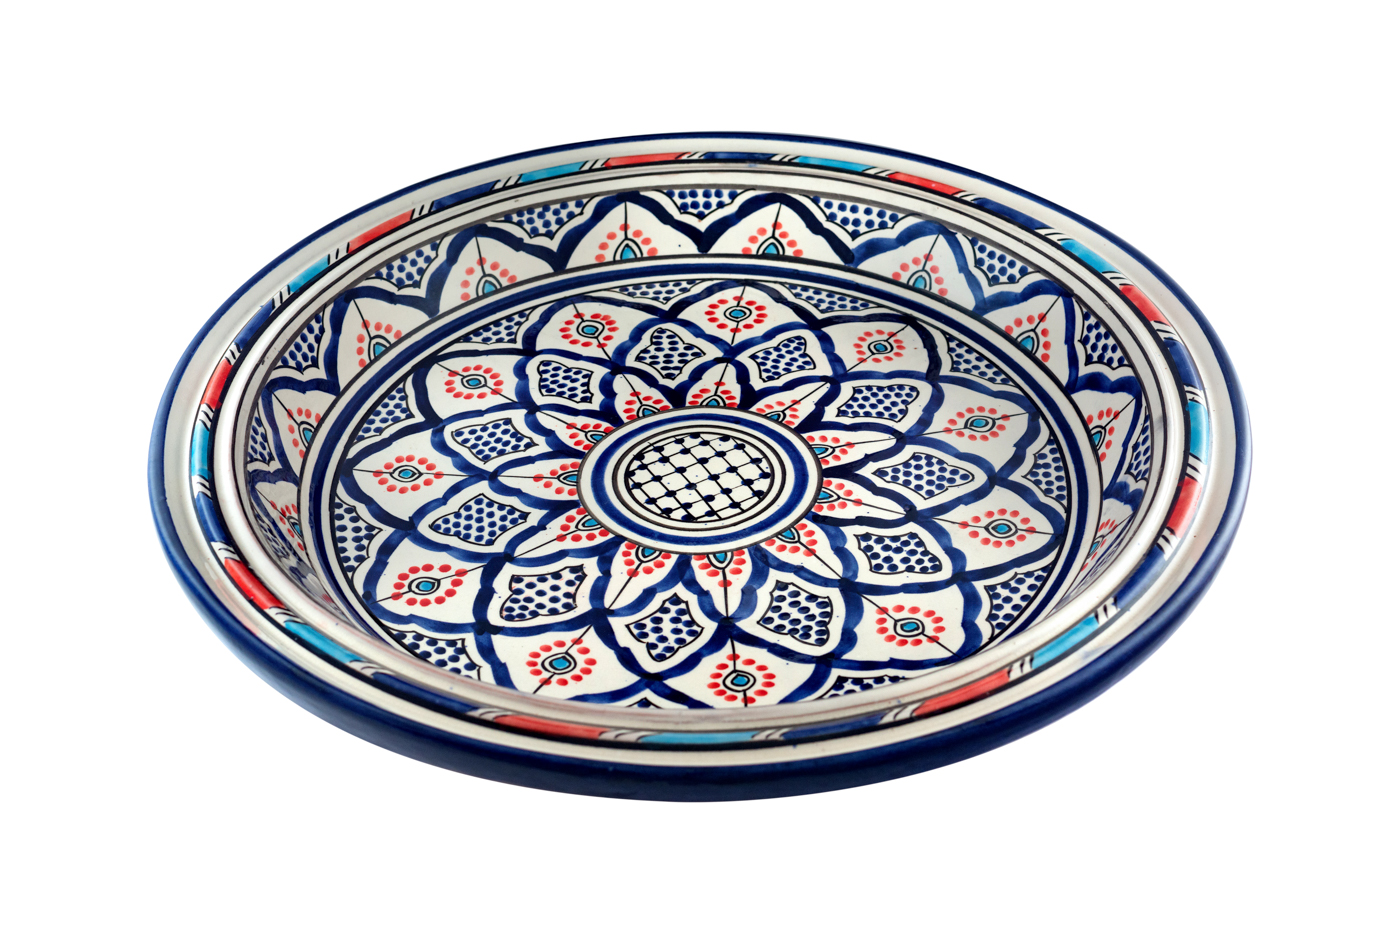 Moroccan painted ceramic tray with floral arabesque design, Blue/Orange